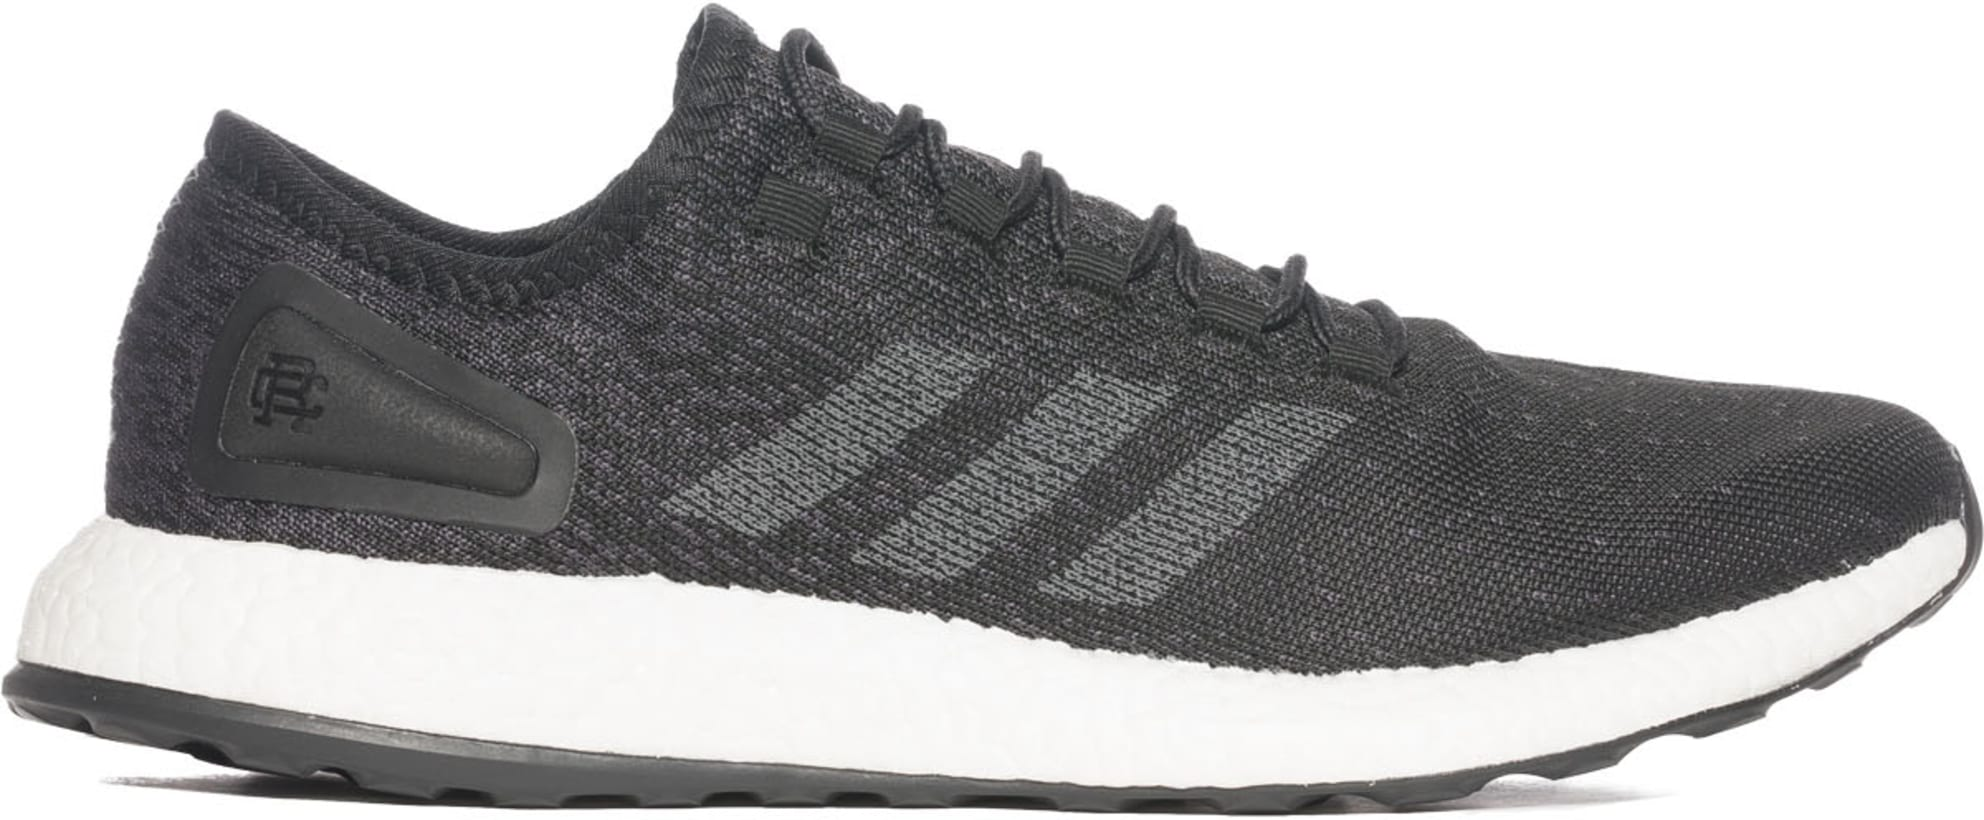 2a095c267 adidas Originals. adidas x Reigning Champ PureBOOST - Core Black Solid Grey Running  White